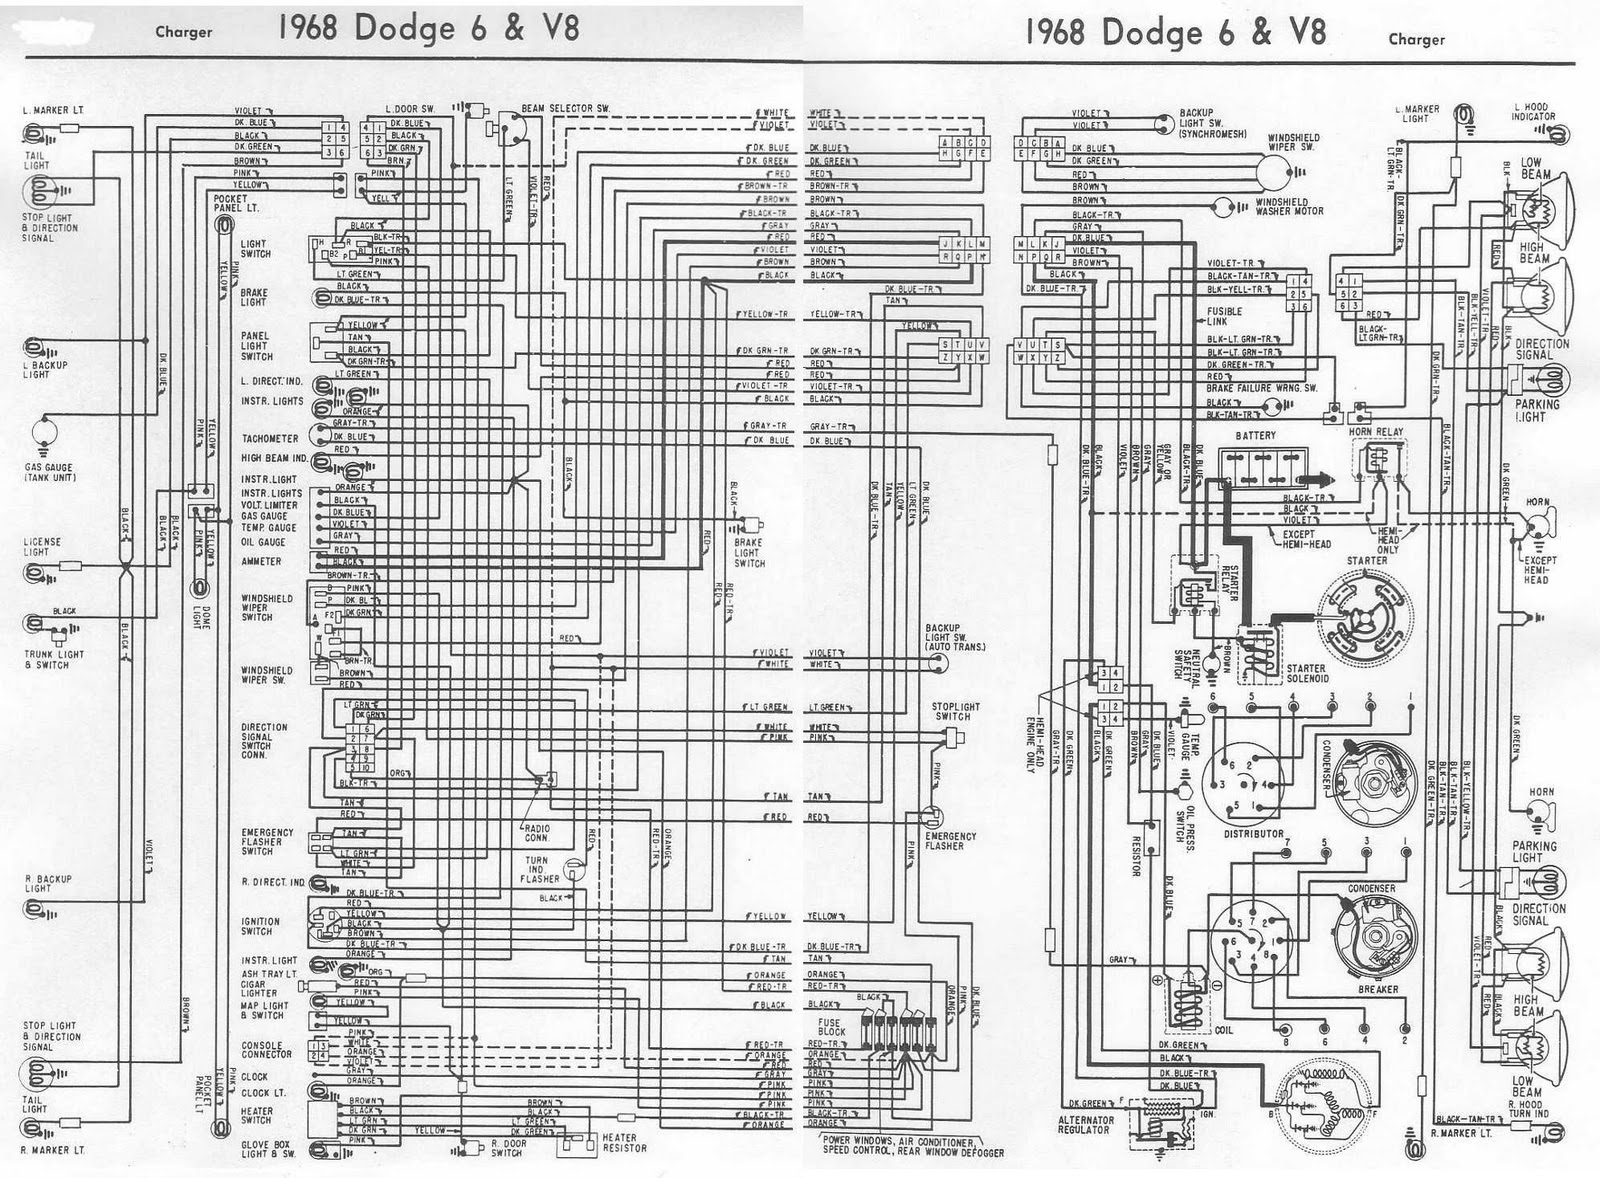 1967 Ford F100 Ignition Switch Wiring Diagram Starting Know About Galaxie Diagrams Dodge Charger 1968 6 And V8 Complete Electrical